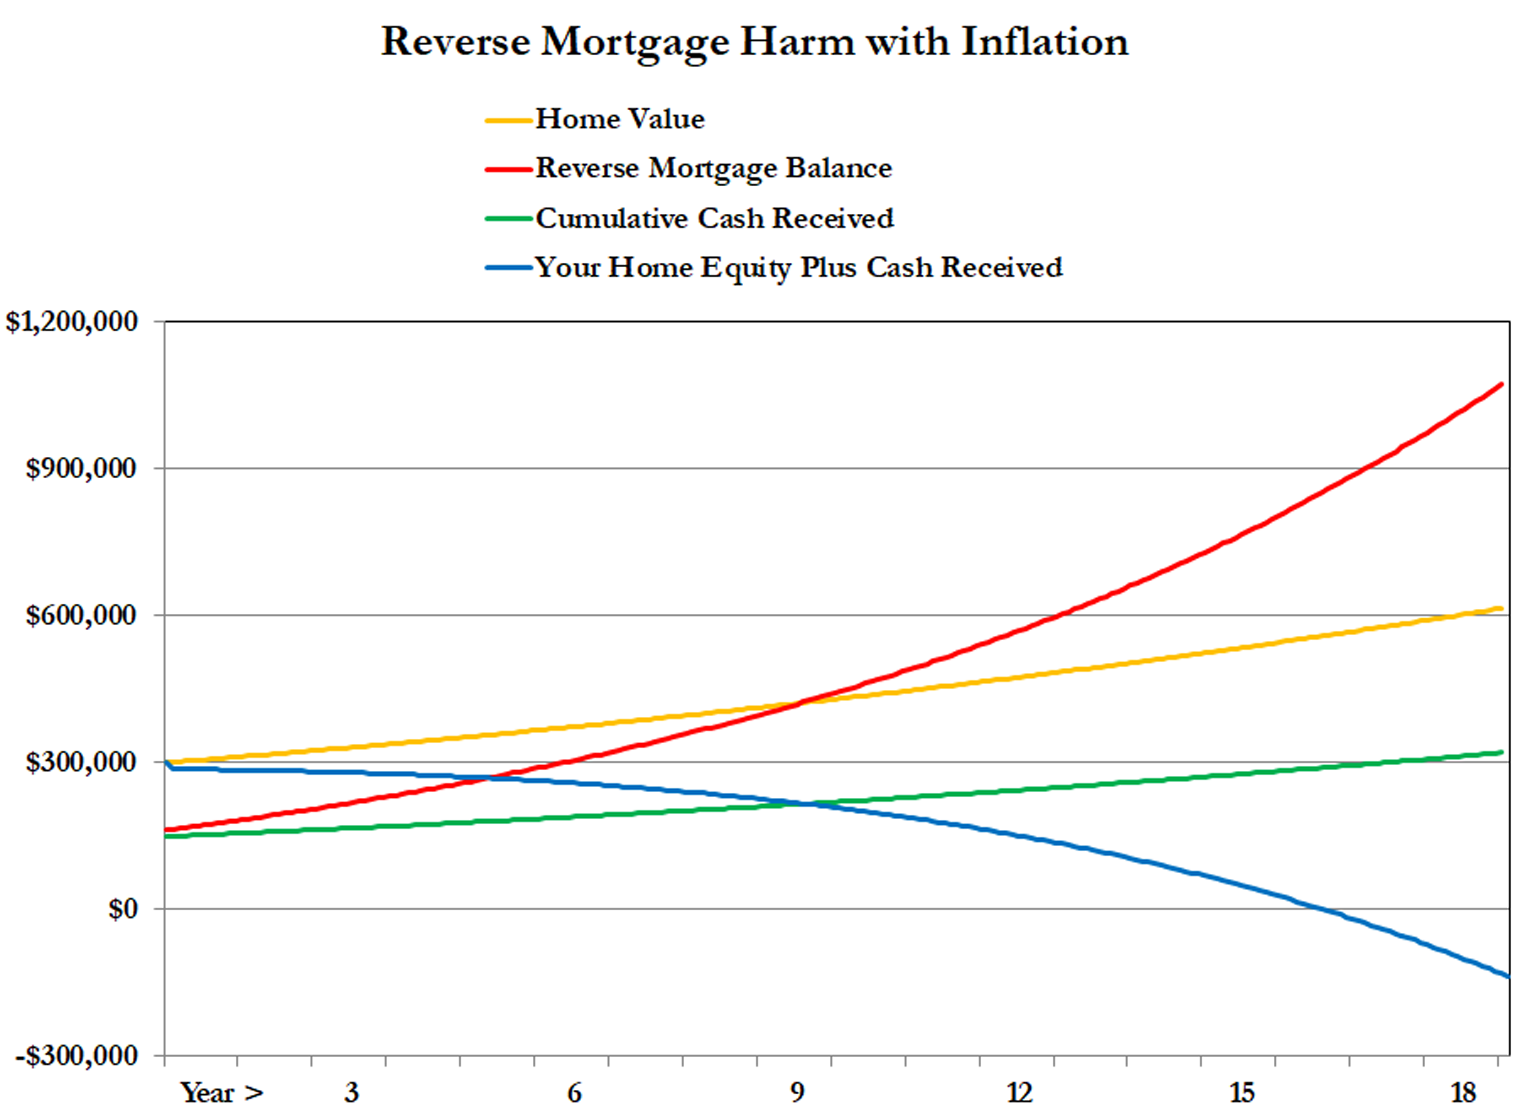 inflation worsens the harm of a reverse mortgage